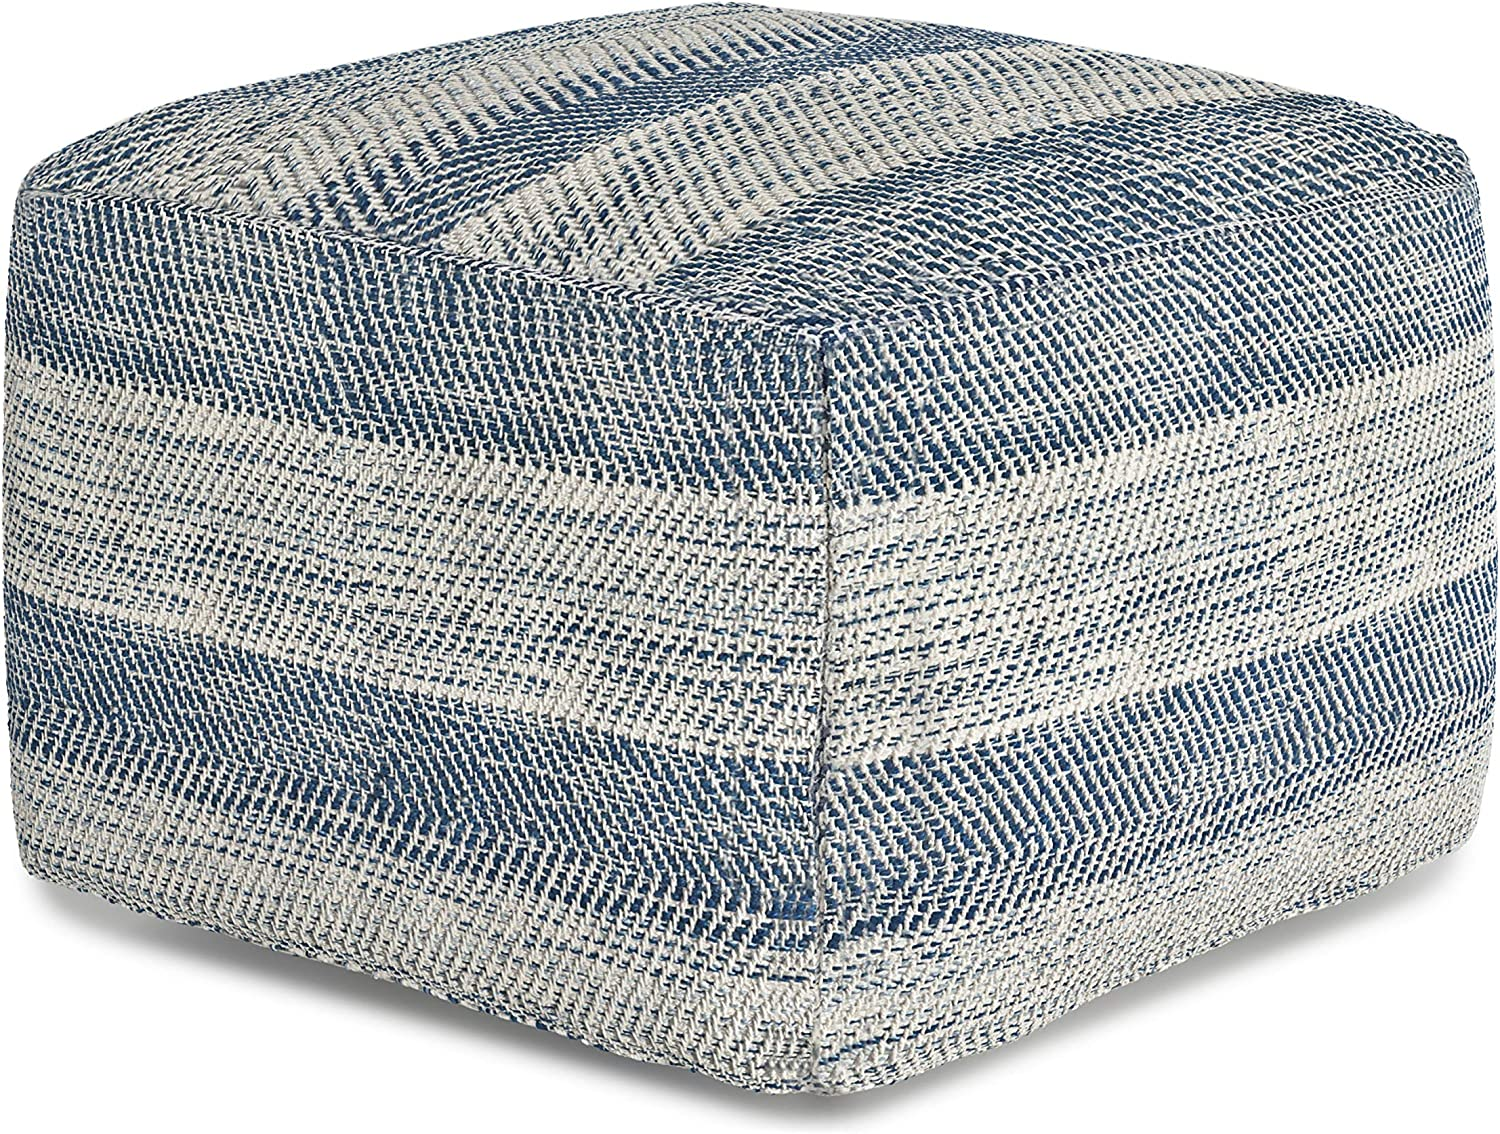 SIMPLIHOME Clay Square Pouf, Footstool, Upholstered in Patterened Teal Melange Hand Woven Cotton, for the Living Room, Bedroom and Kids Room, Transitional, Modern